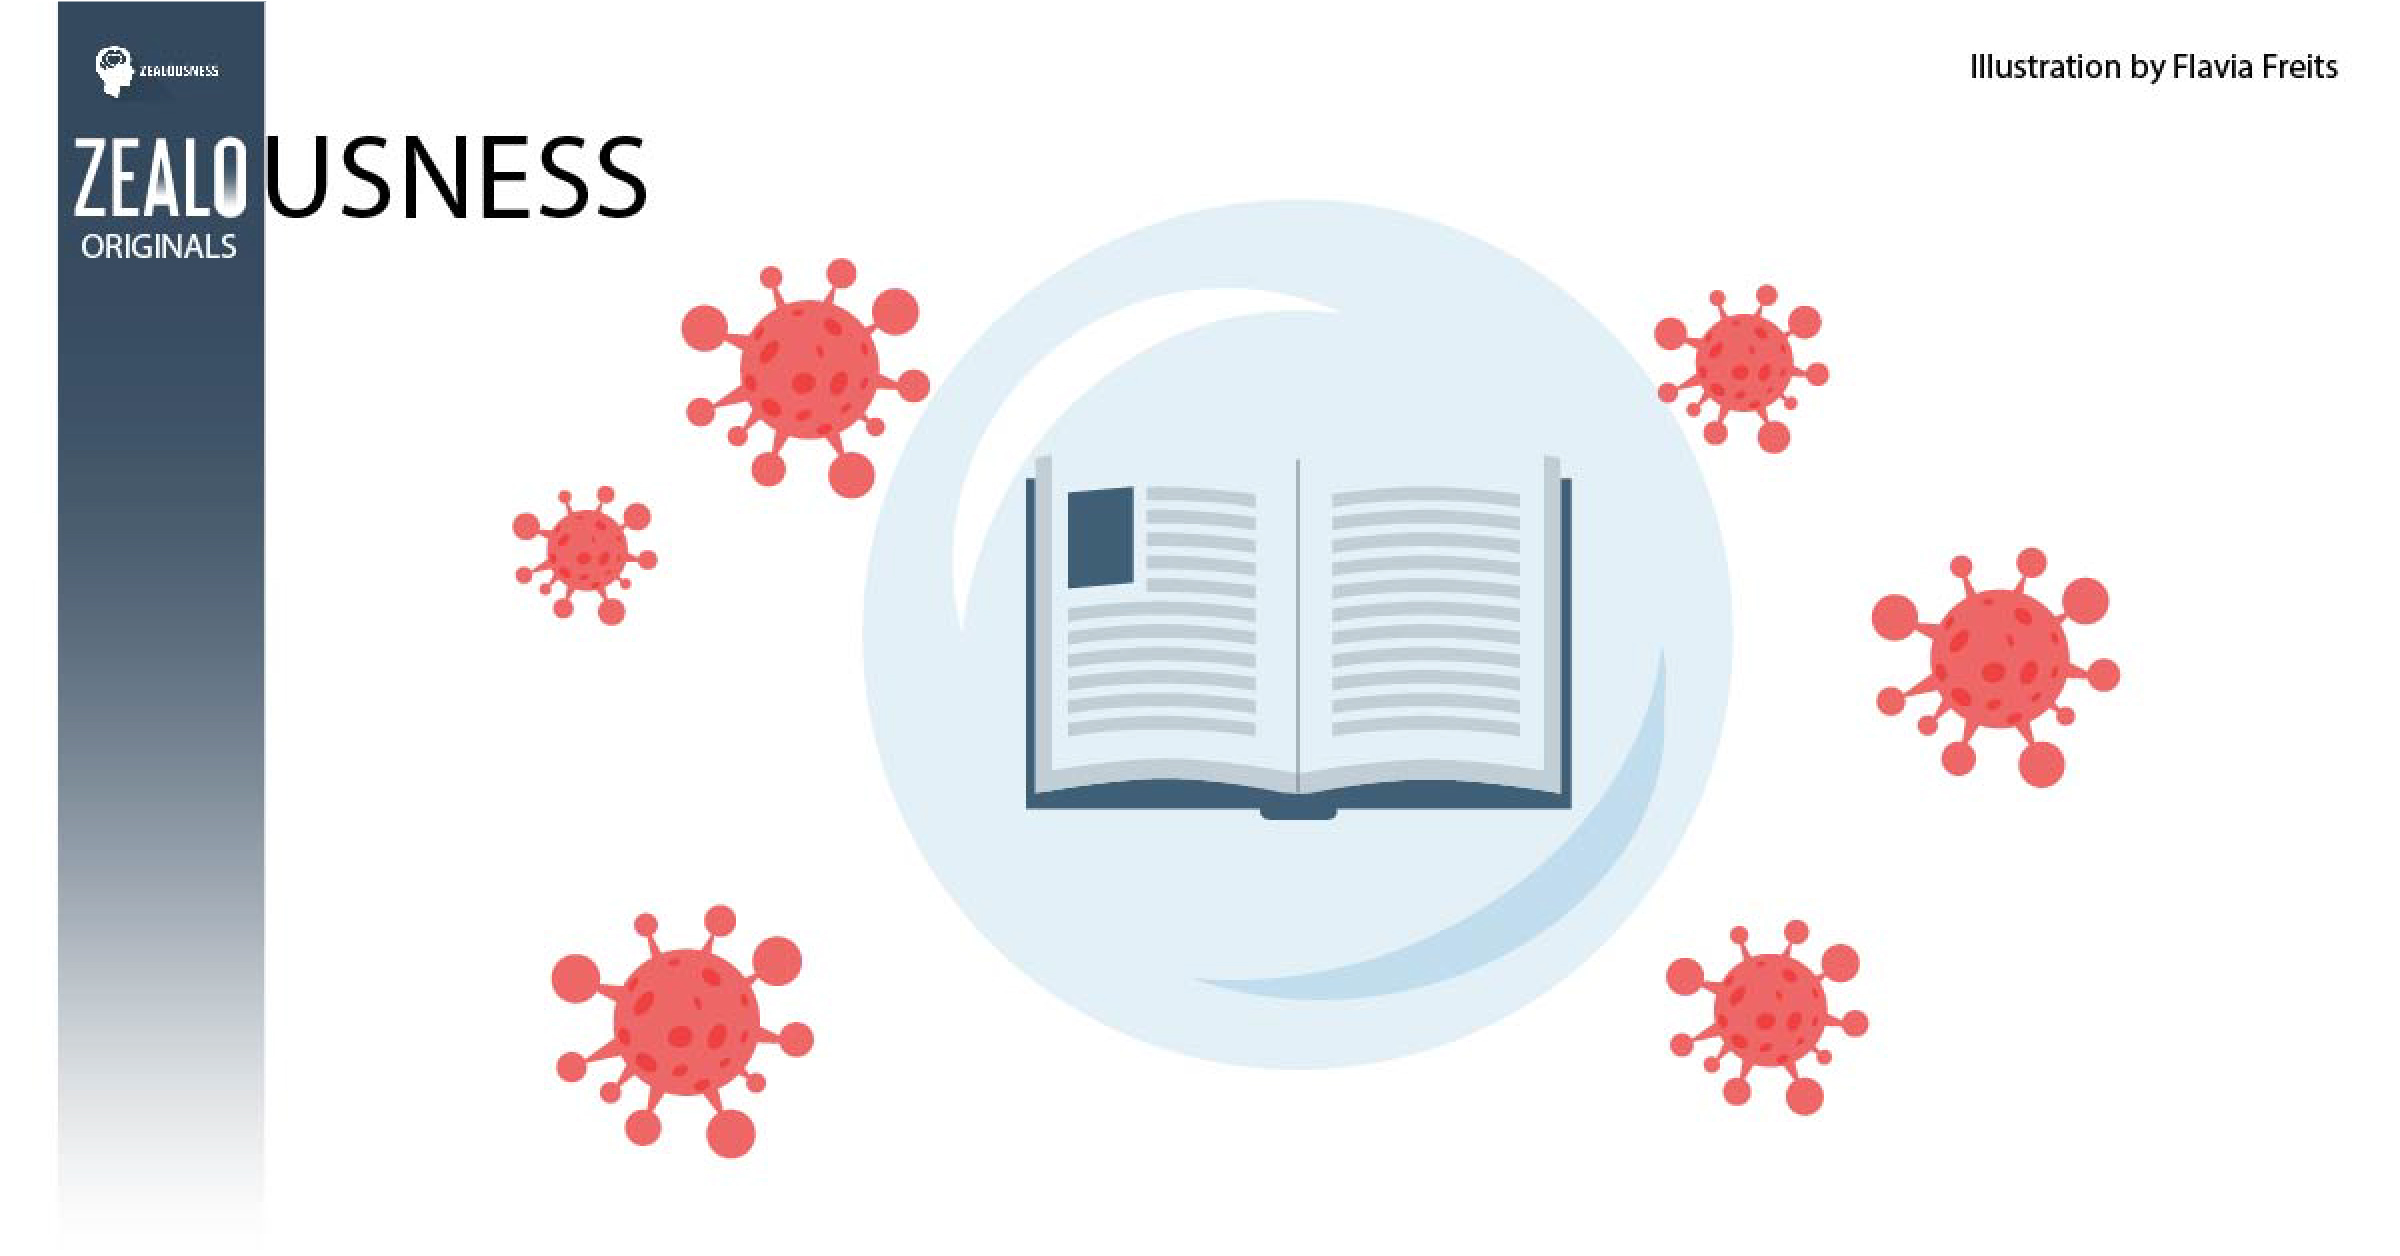 Tiny molecules of a virus surround an illustration of a book.